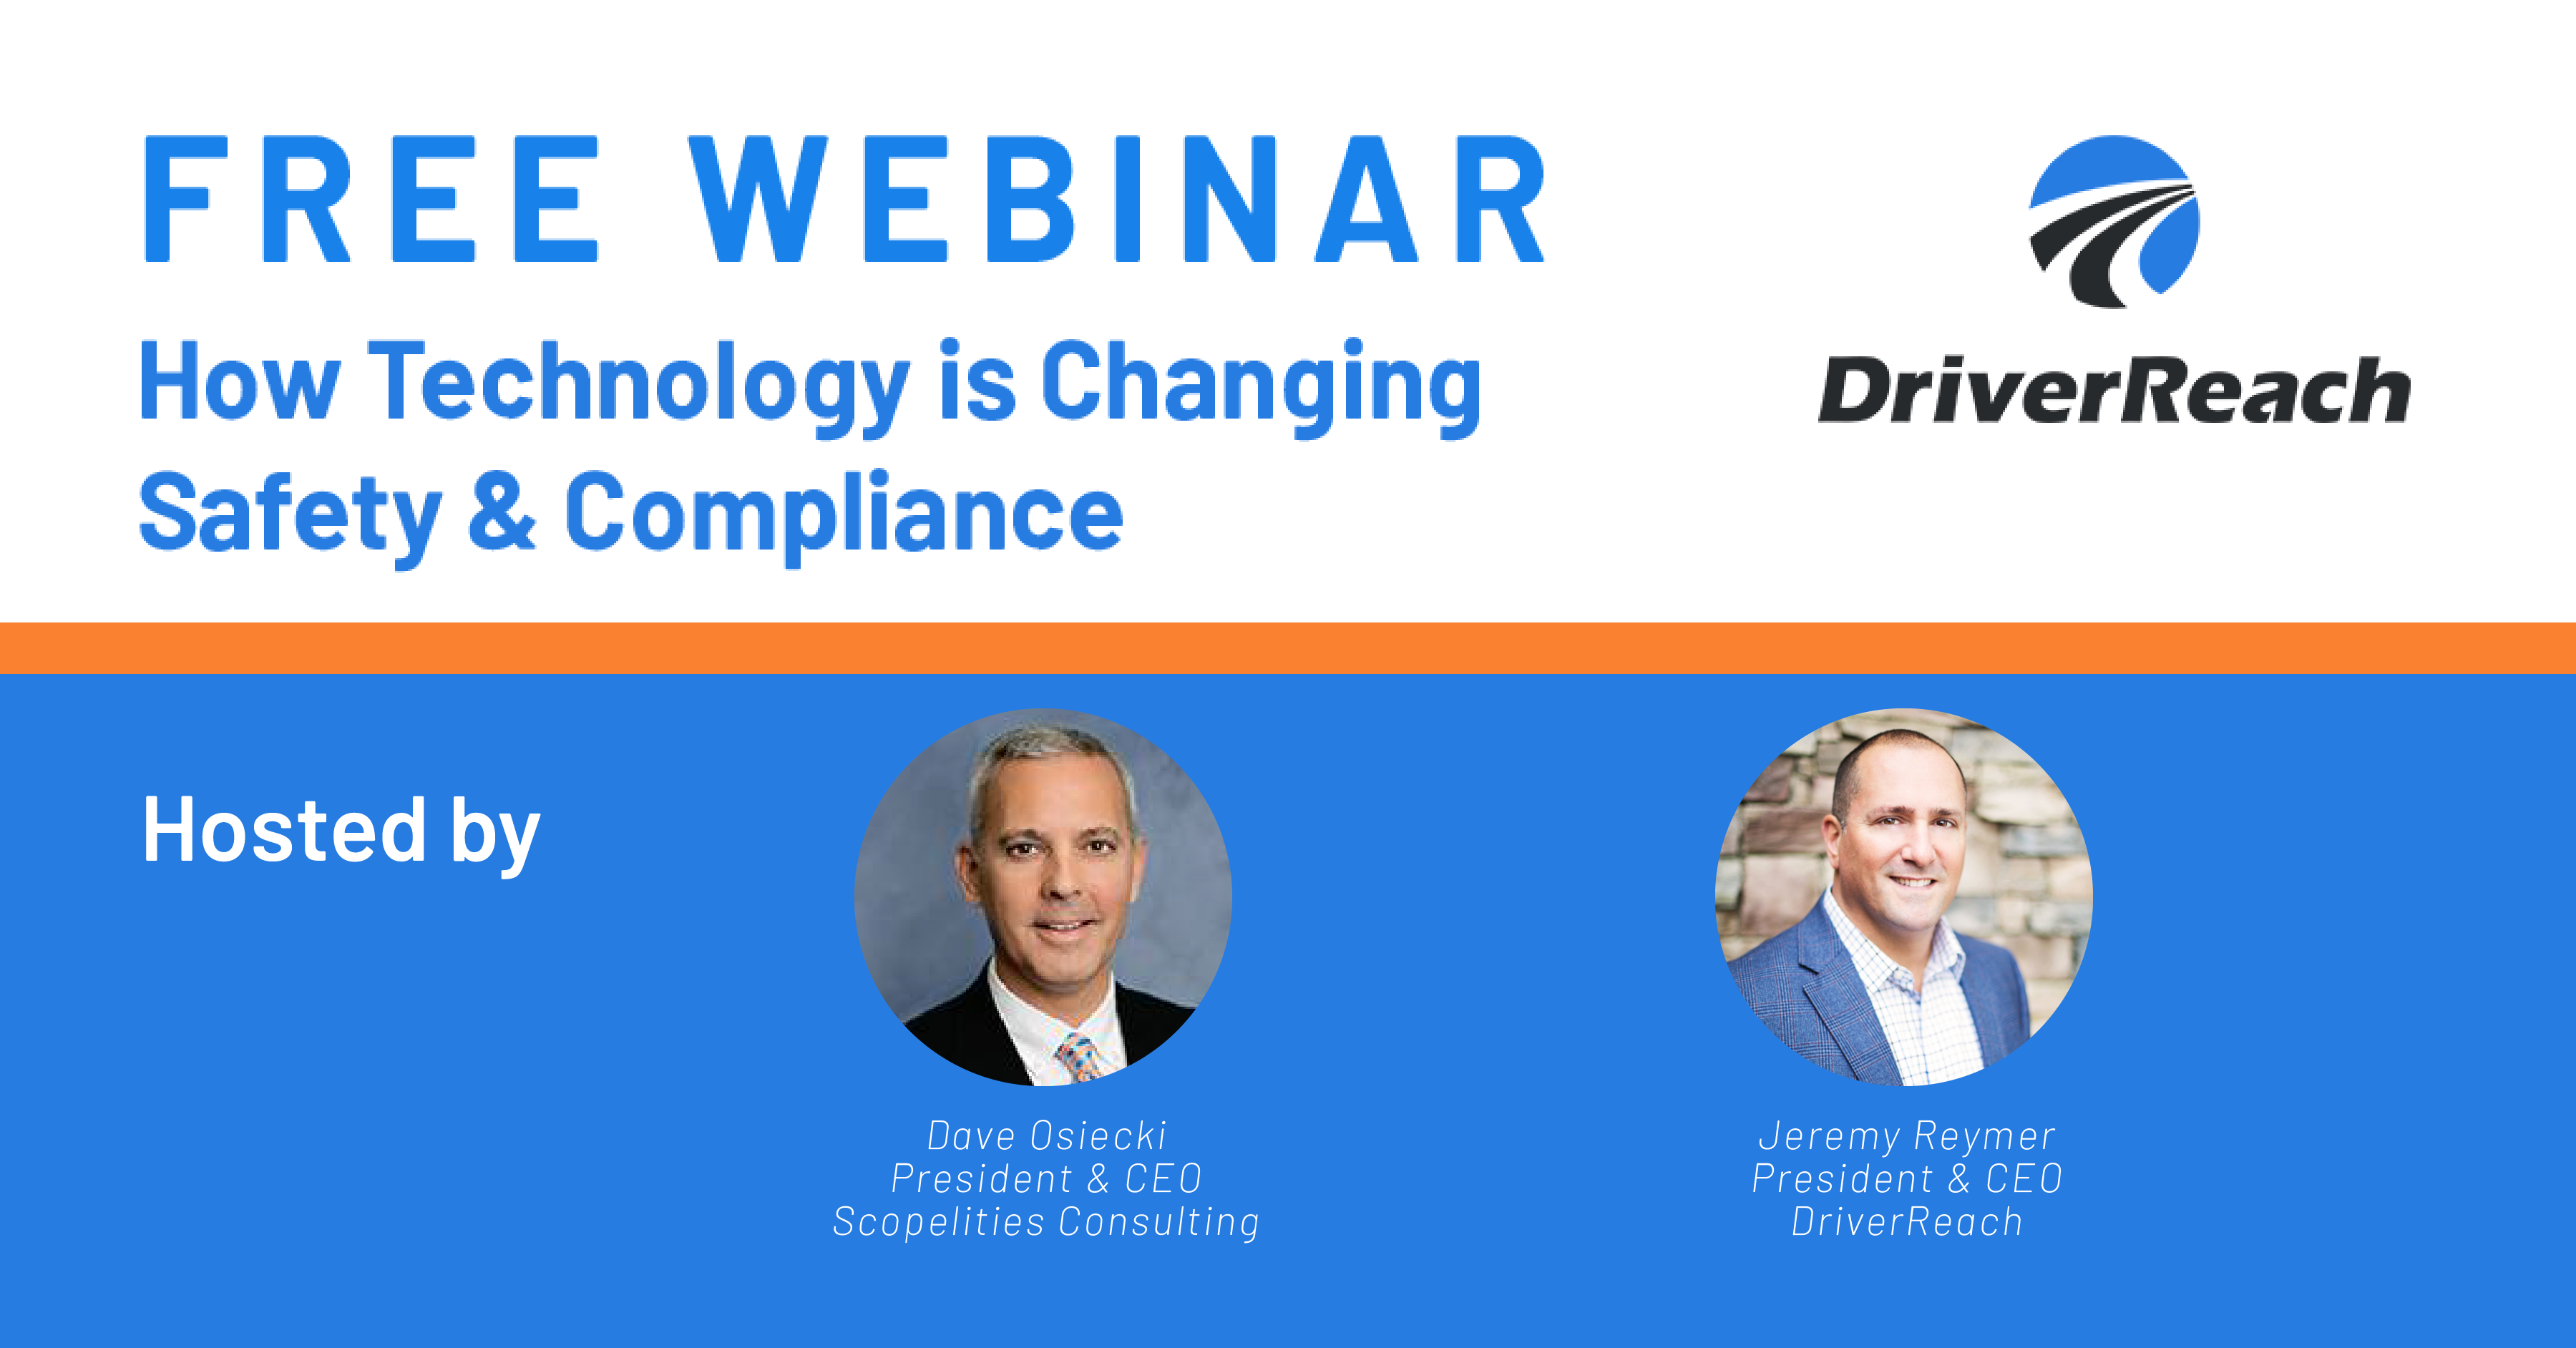 WEBINAR:How Technology is Changing Safety & Compliance